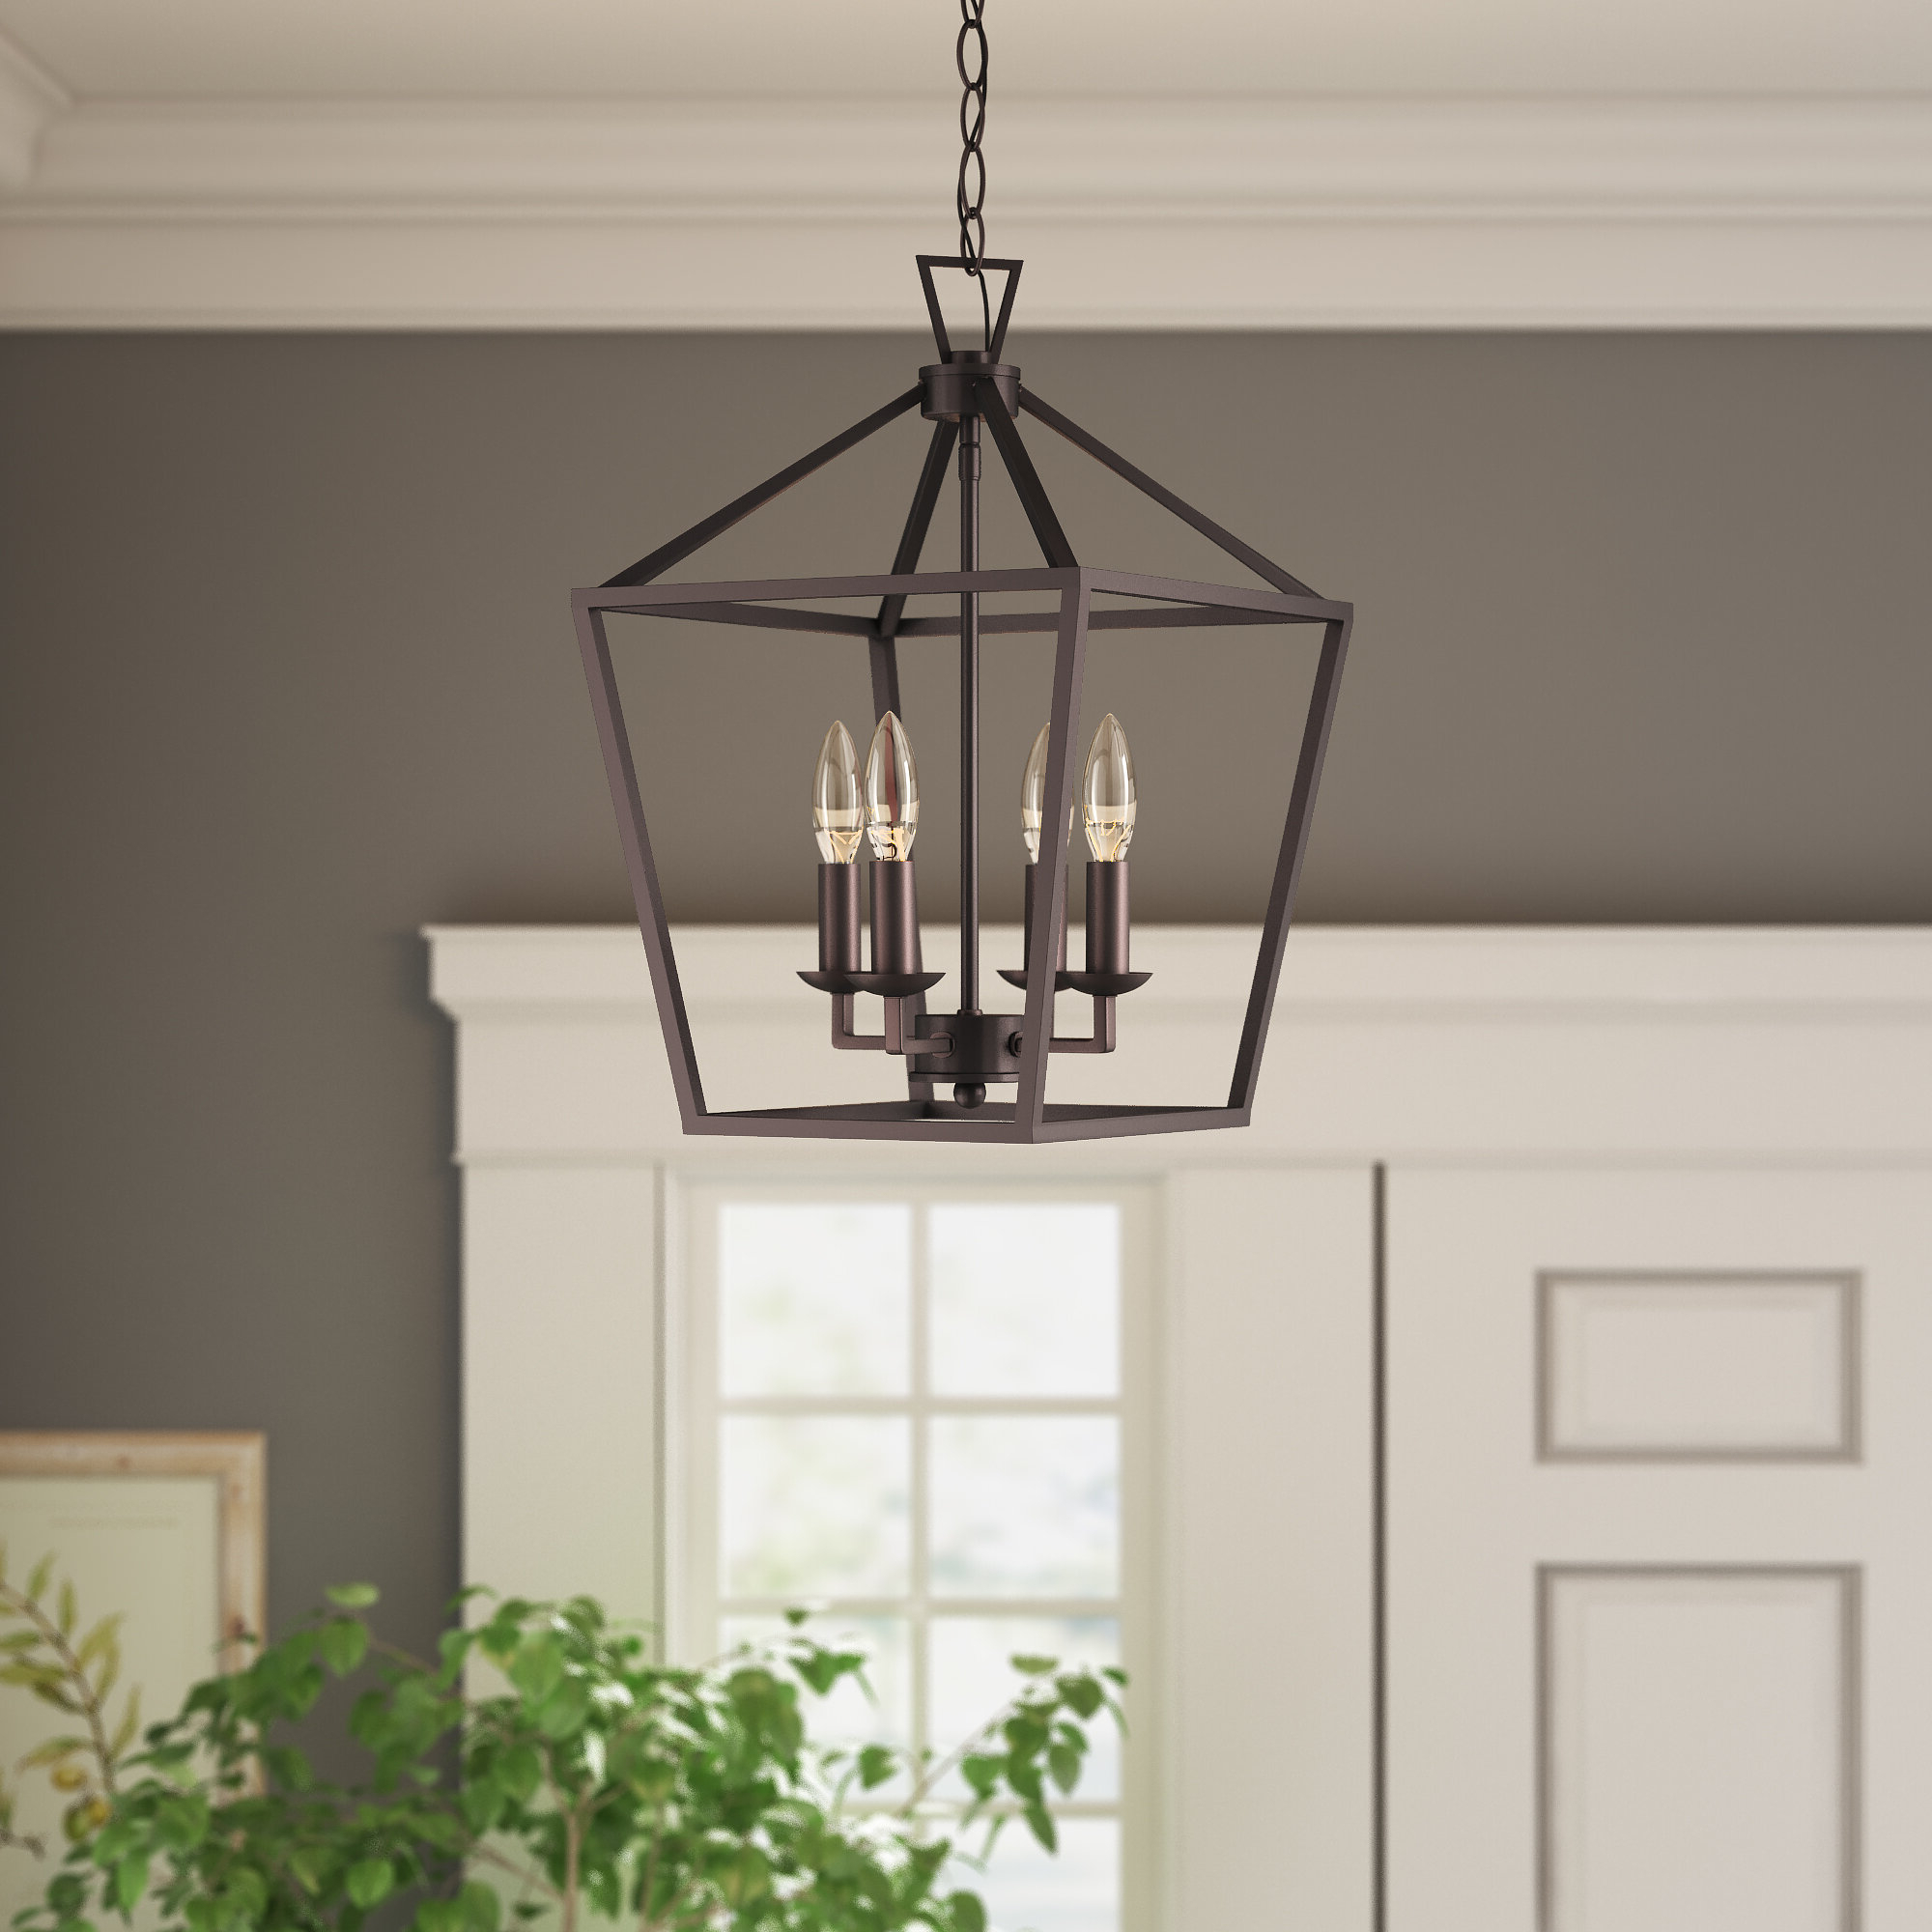 Widely Used Carmen 4 Light Lantern Geometric Pendant Pertaining To Carmen 8 Light Lantern Tiered Pendants (View 17 of 20)